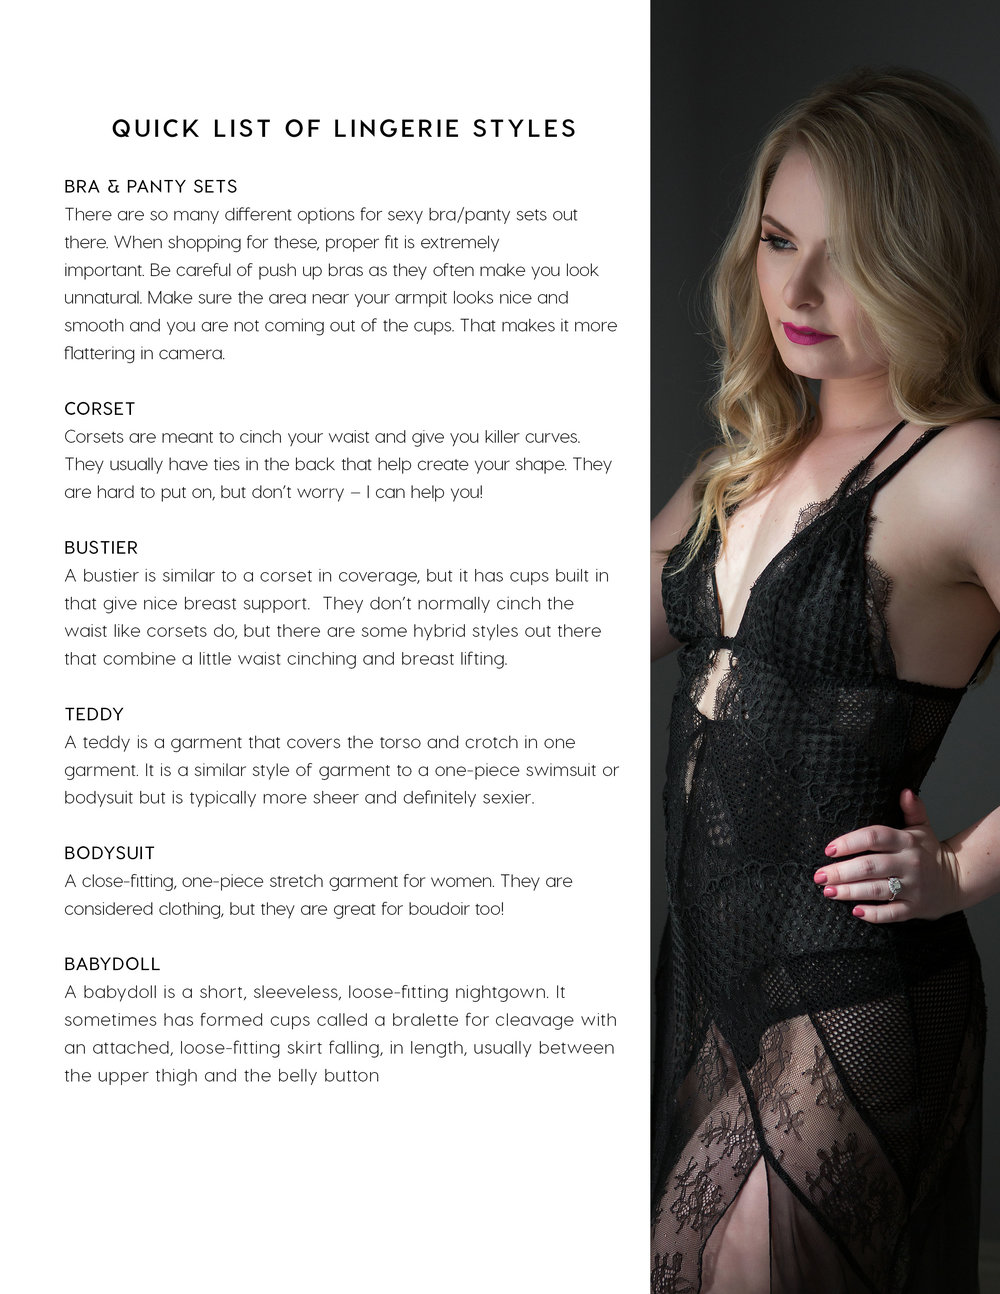 MandyMerinoPhotography_LingerieGuide_Page2.jpg